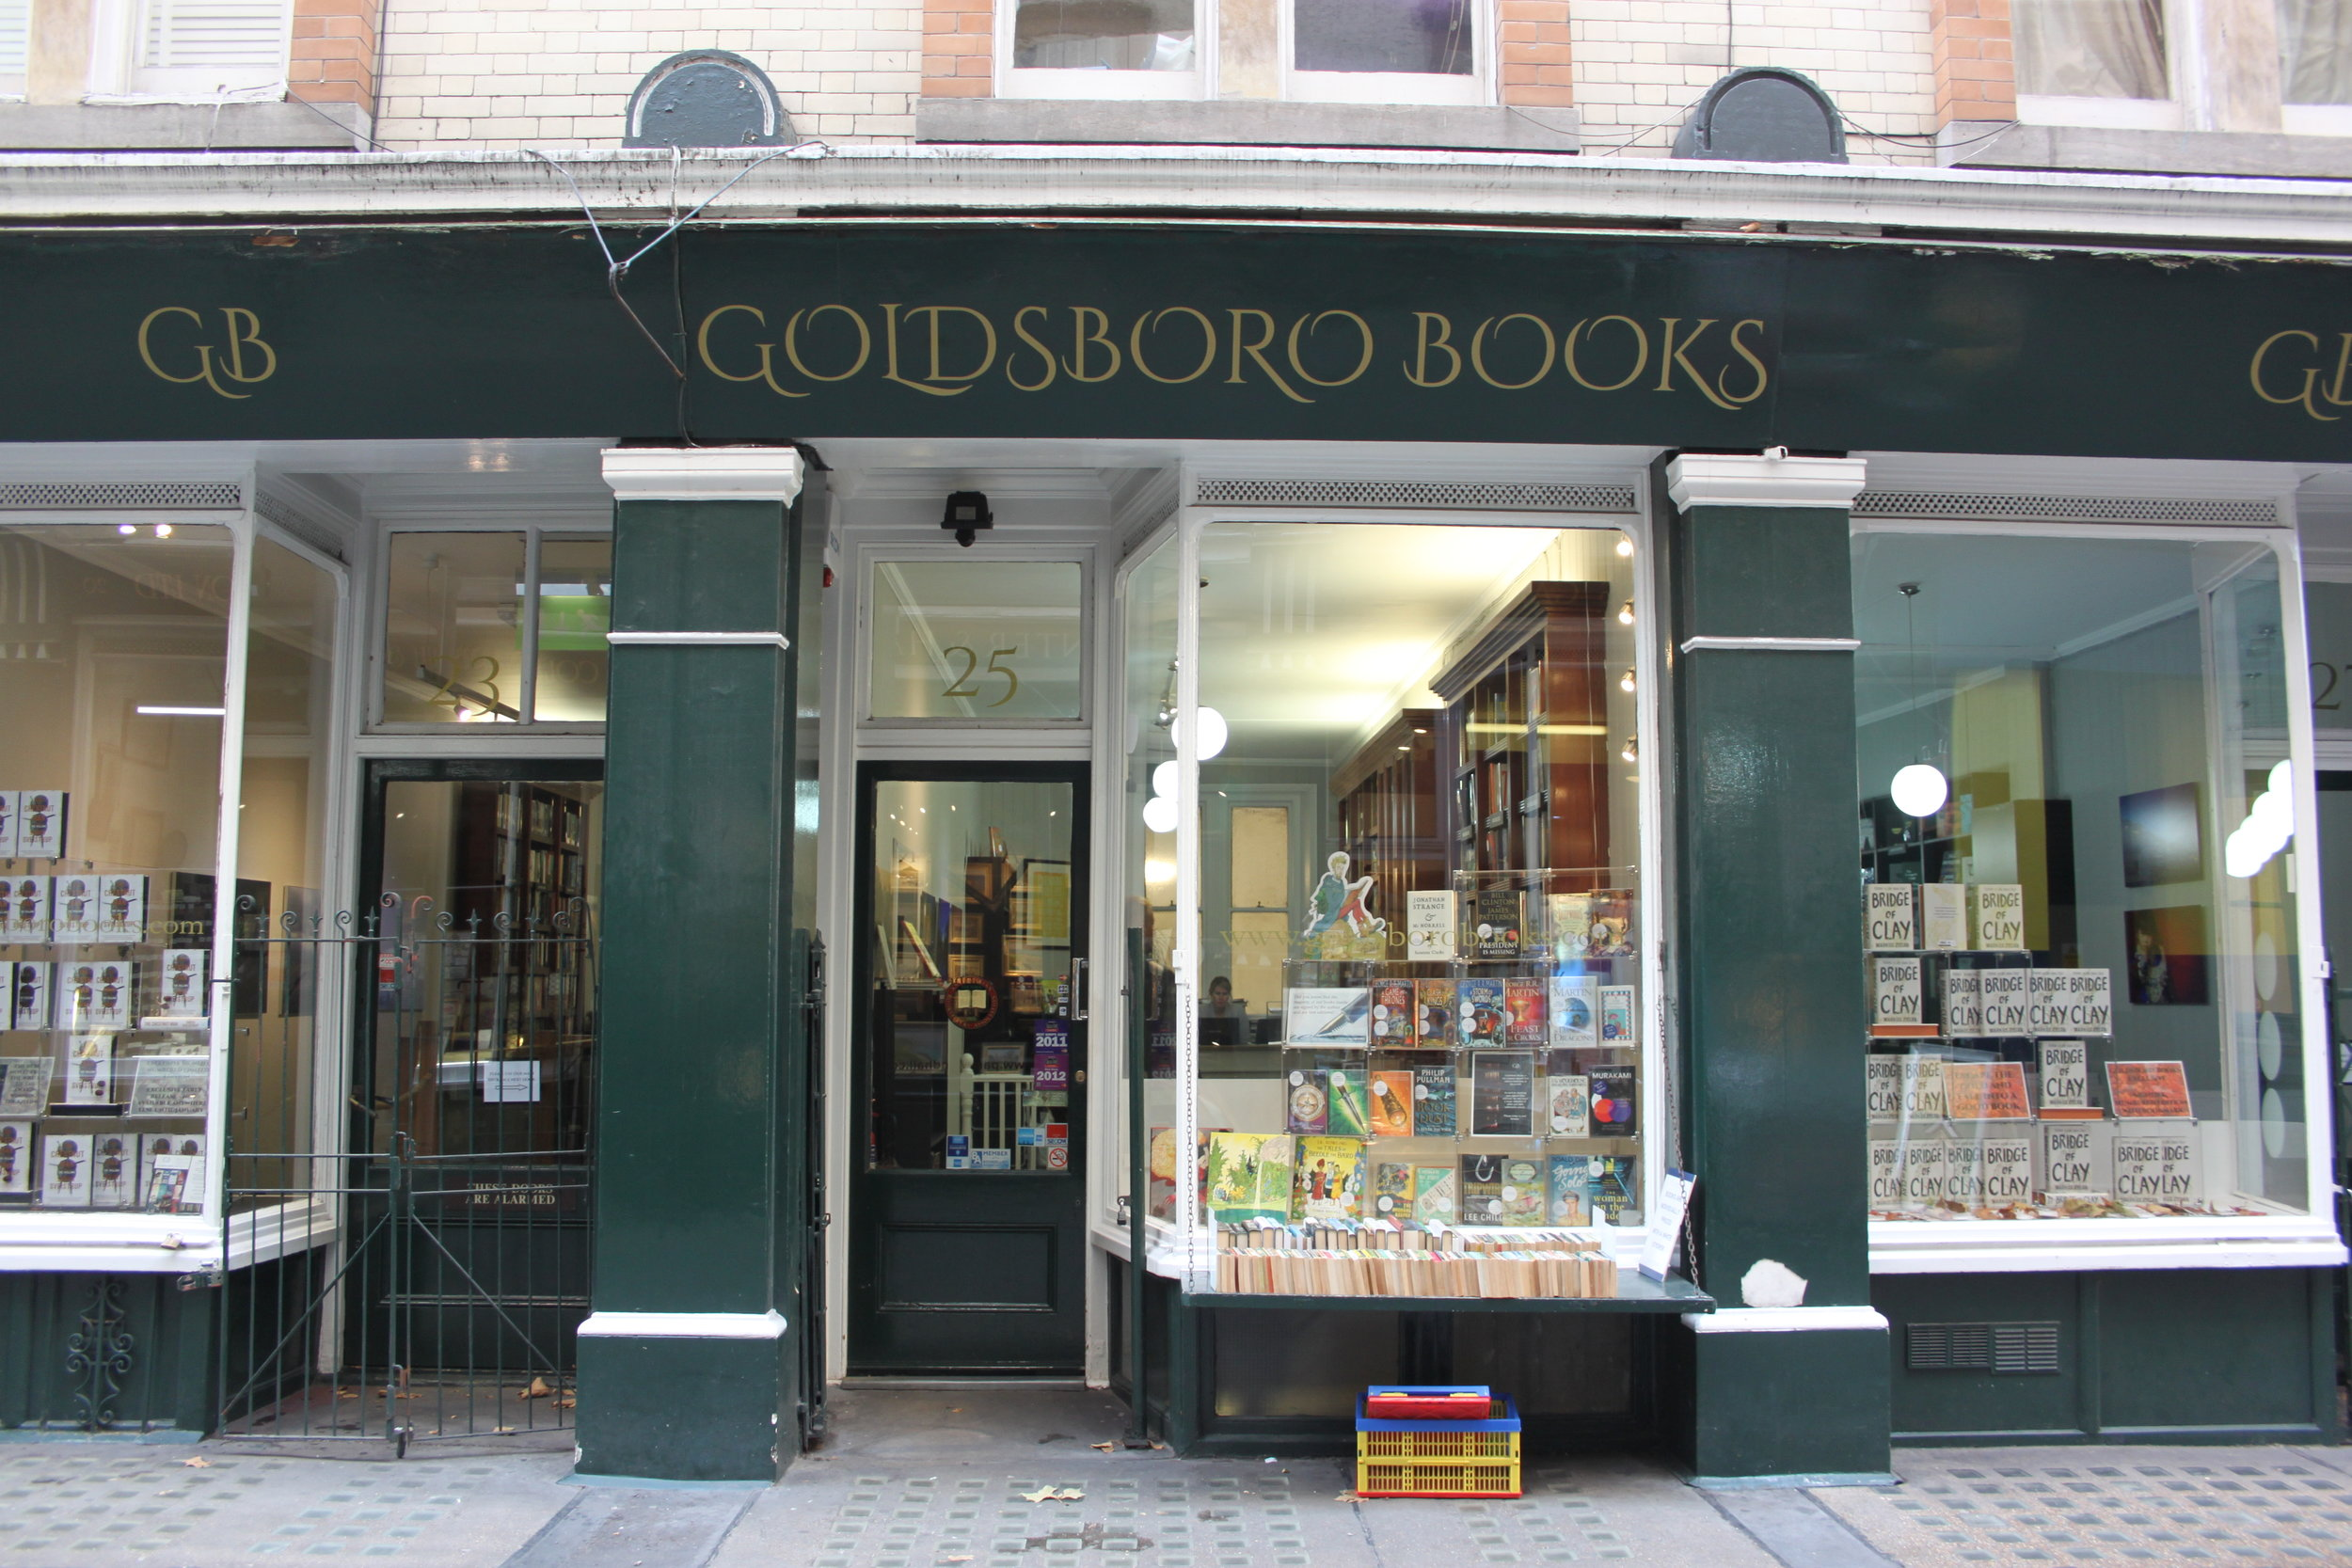 Goldsboro Books - Opening Hours:Monday to Friday 10am-6pmSaturday 11am-5pmCall: 020 7497 9230Email: enquiries@goldsborobooks.comMember of the BA and the ABA